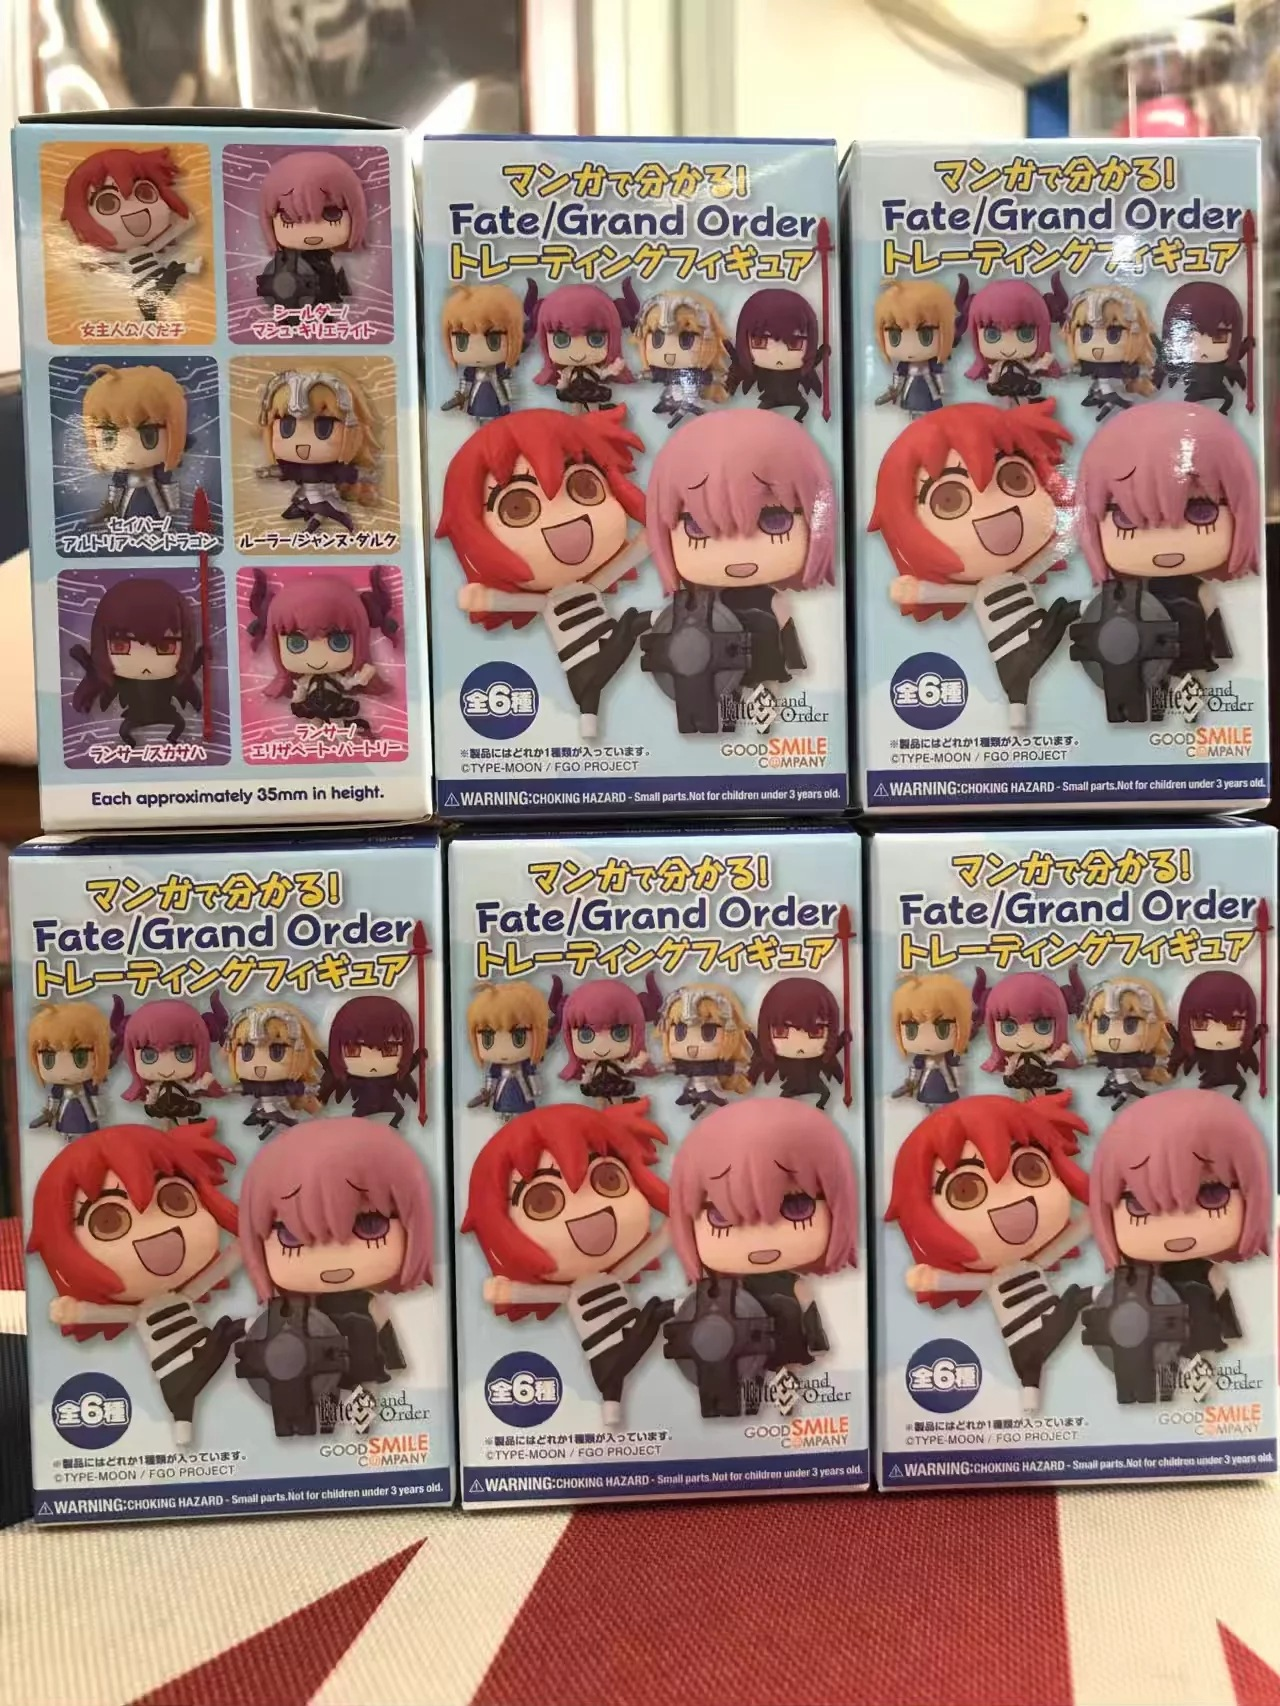 2019 Toy Gift Model New Teen Gift Anime Learn About FGO From Comics!  Fate/Grand Order GSC Q Version 6 Doll Box Egg... From Kennyxhd3, &Price; |  ...